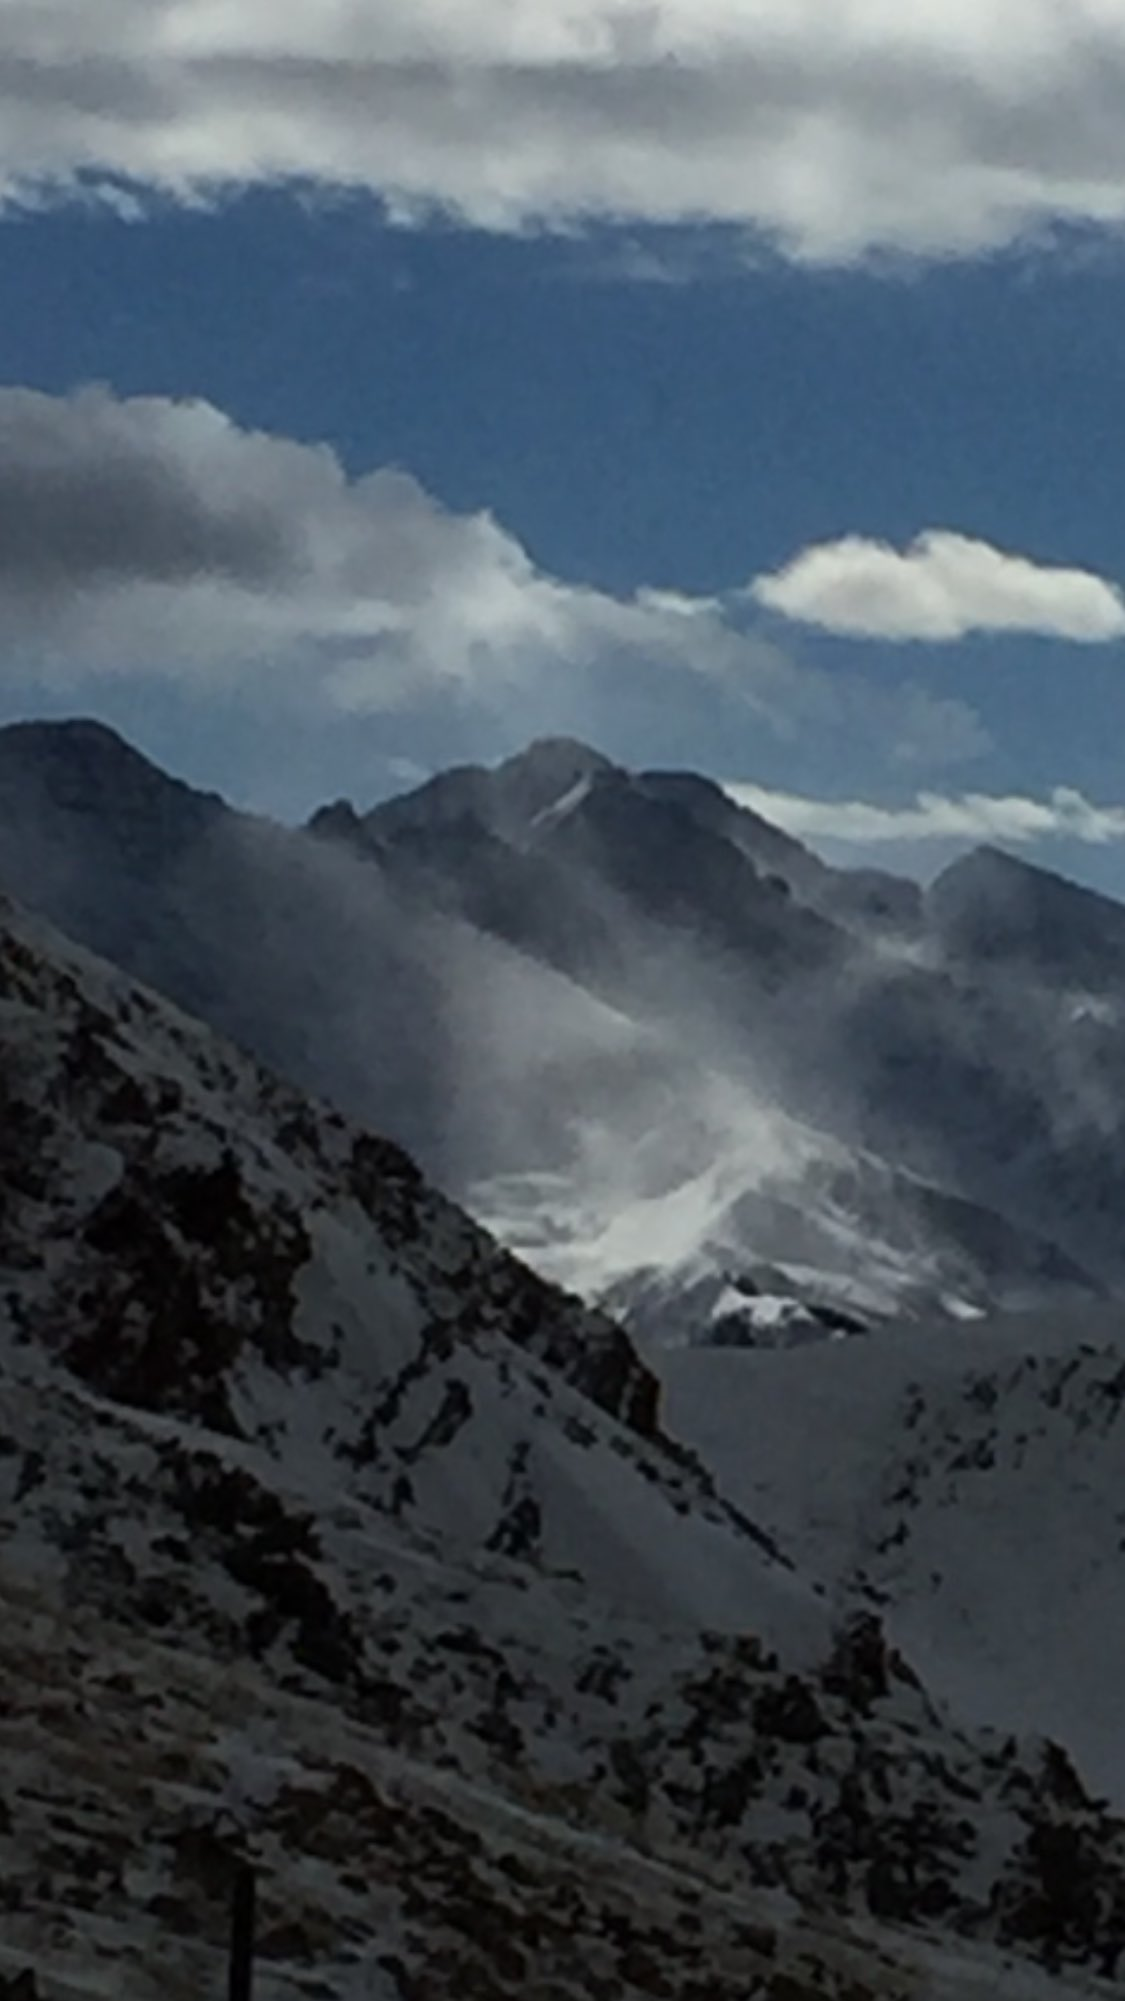 Yesterday's photo from the top of highlands Bowl:Wind whipping up snow with sunlight. https://t.co/Sy1C2MISTR